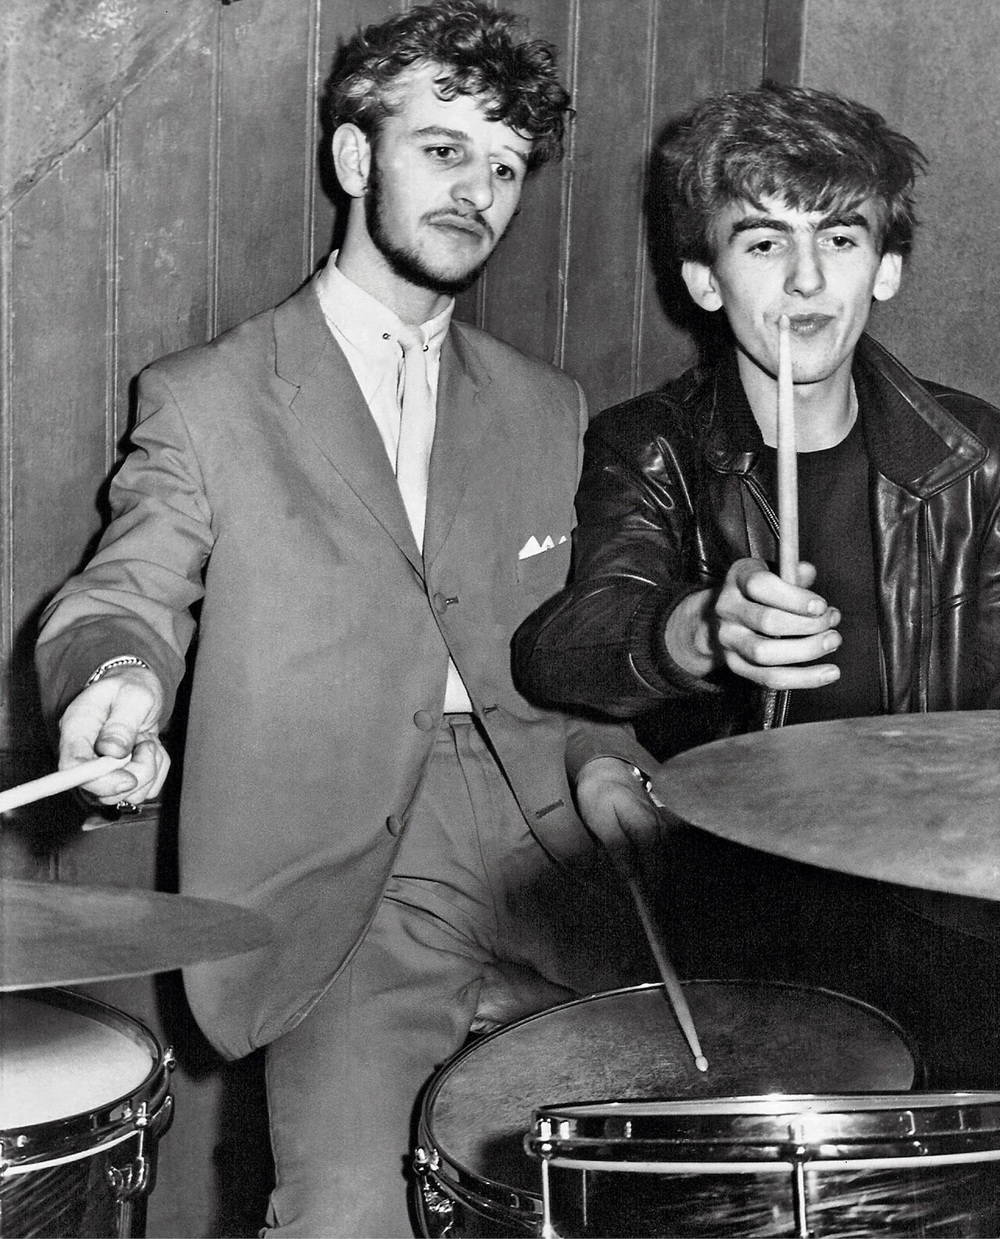 Ringo Starr and George Harrison playing drums, circa 1962.